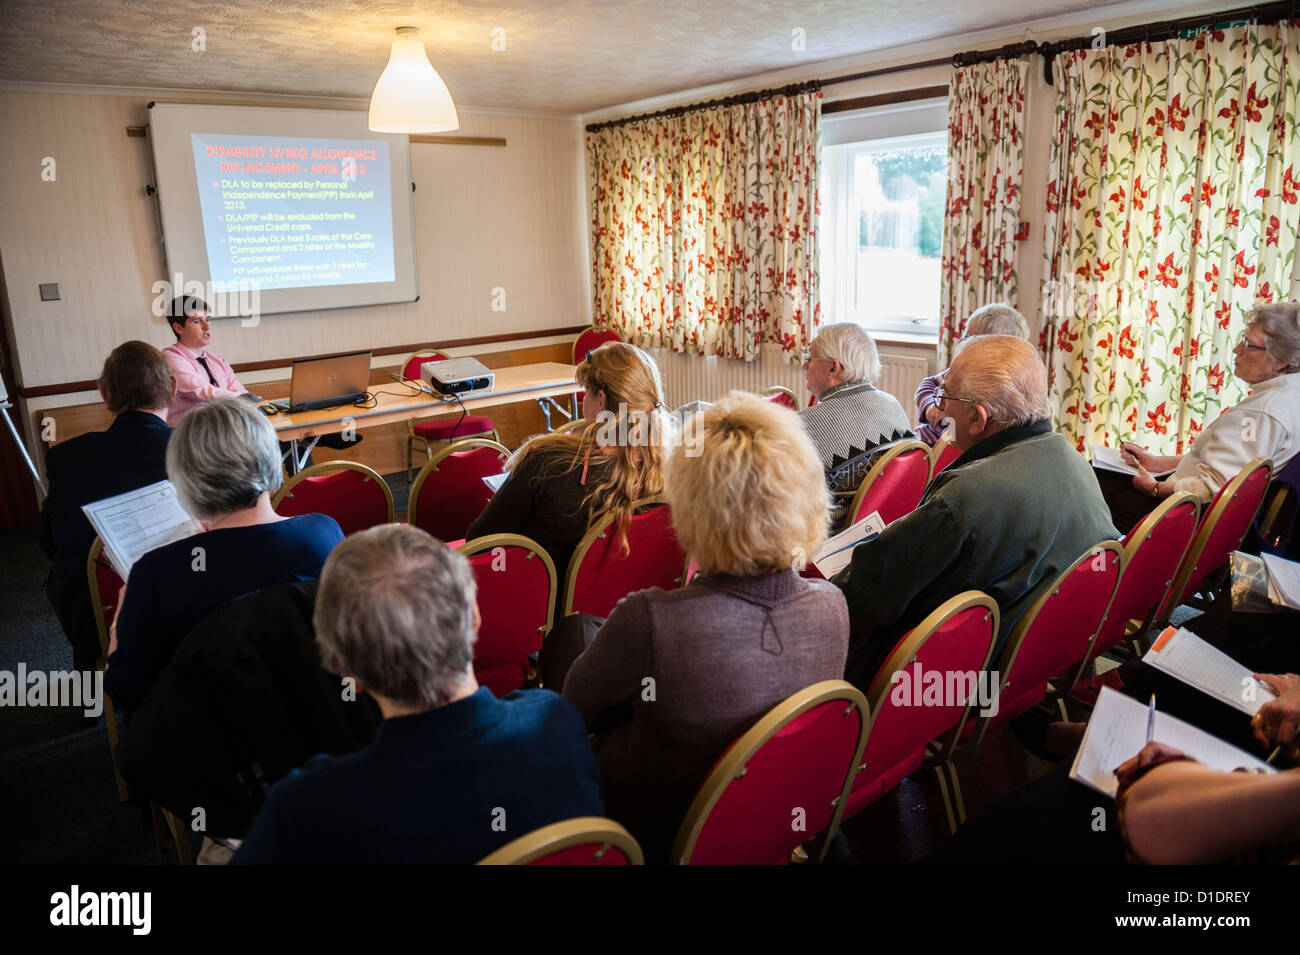 Giving advice on Housing Benefit changes to a members of a housing association at the annual Tenant Conference - Stock Image